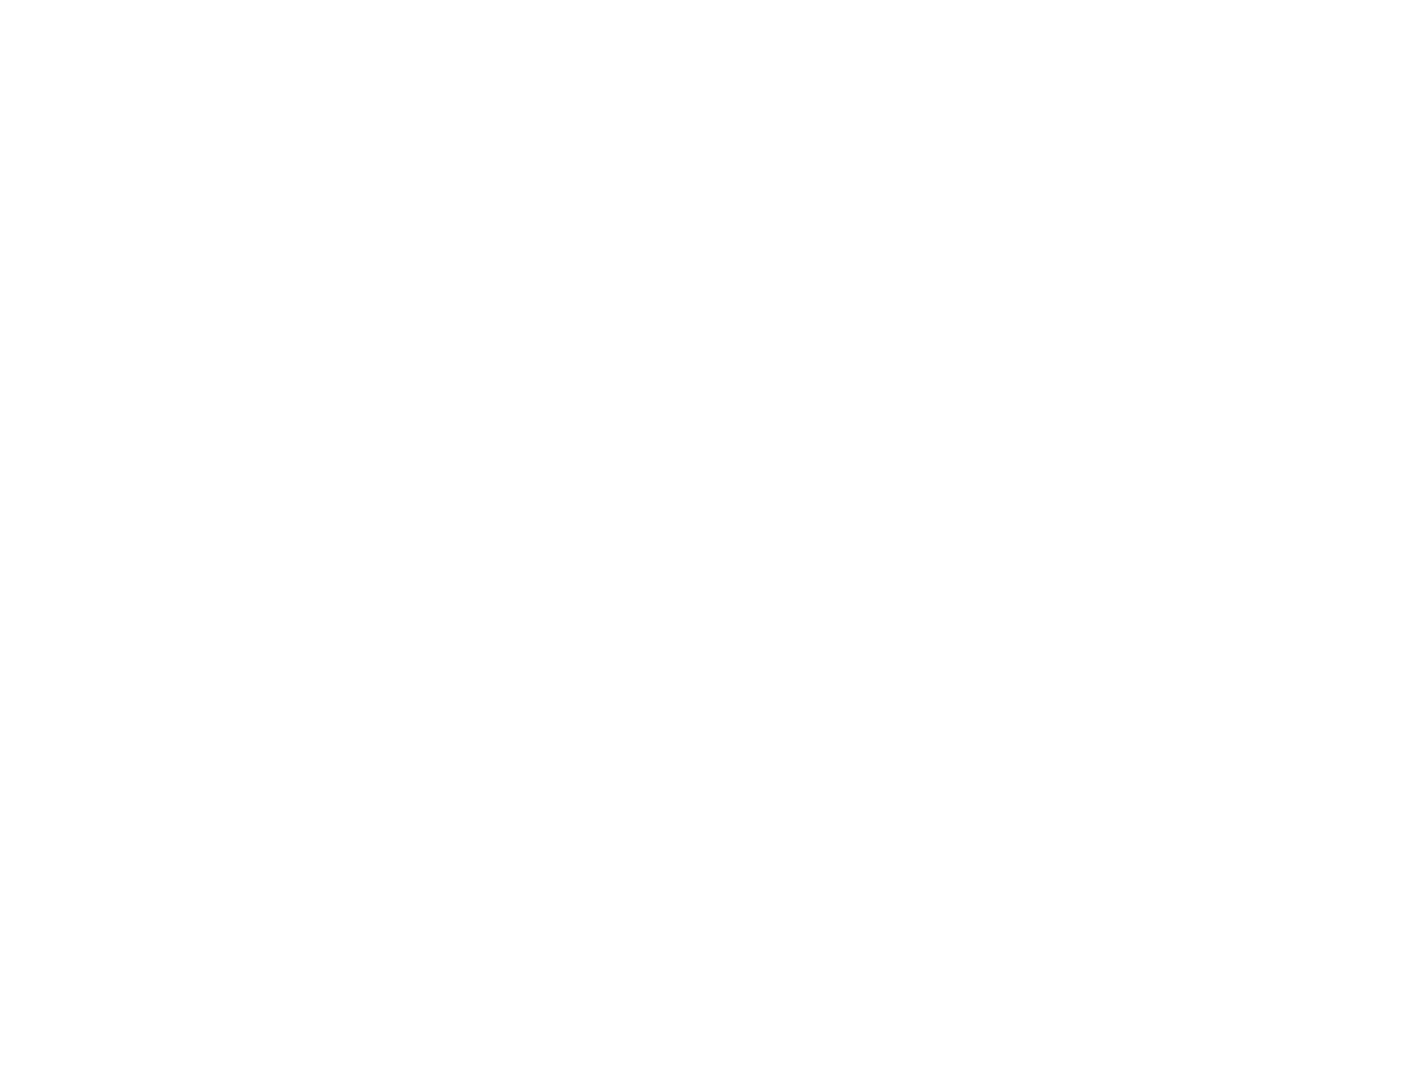 BEST OF 2000 TITLE.png